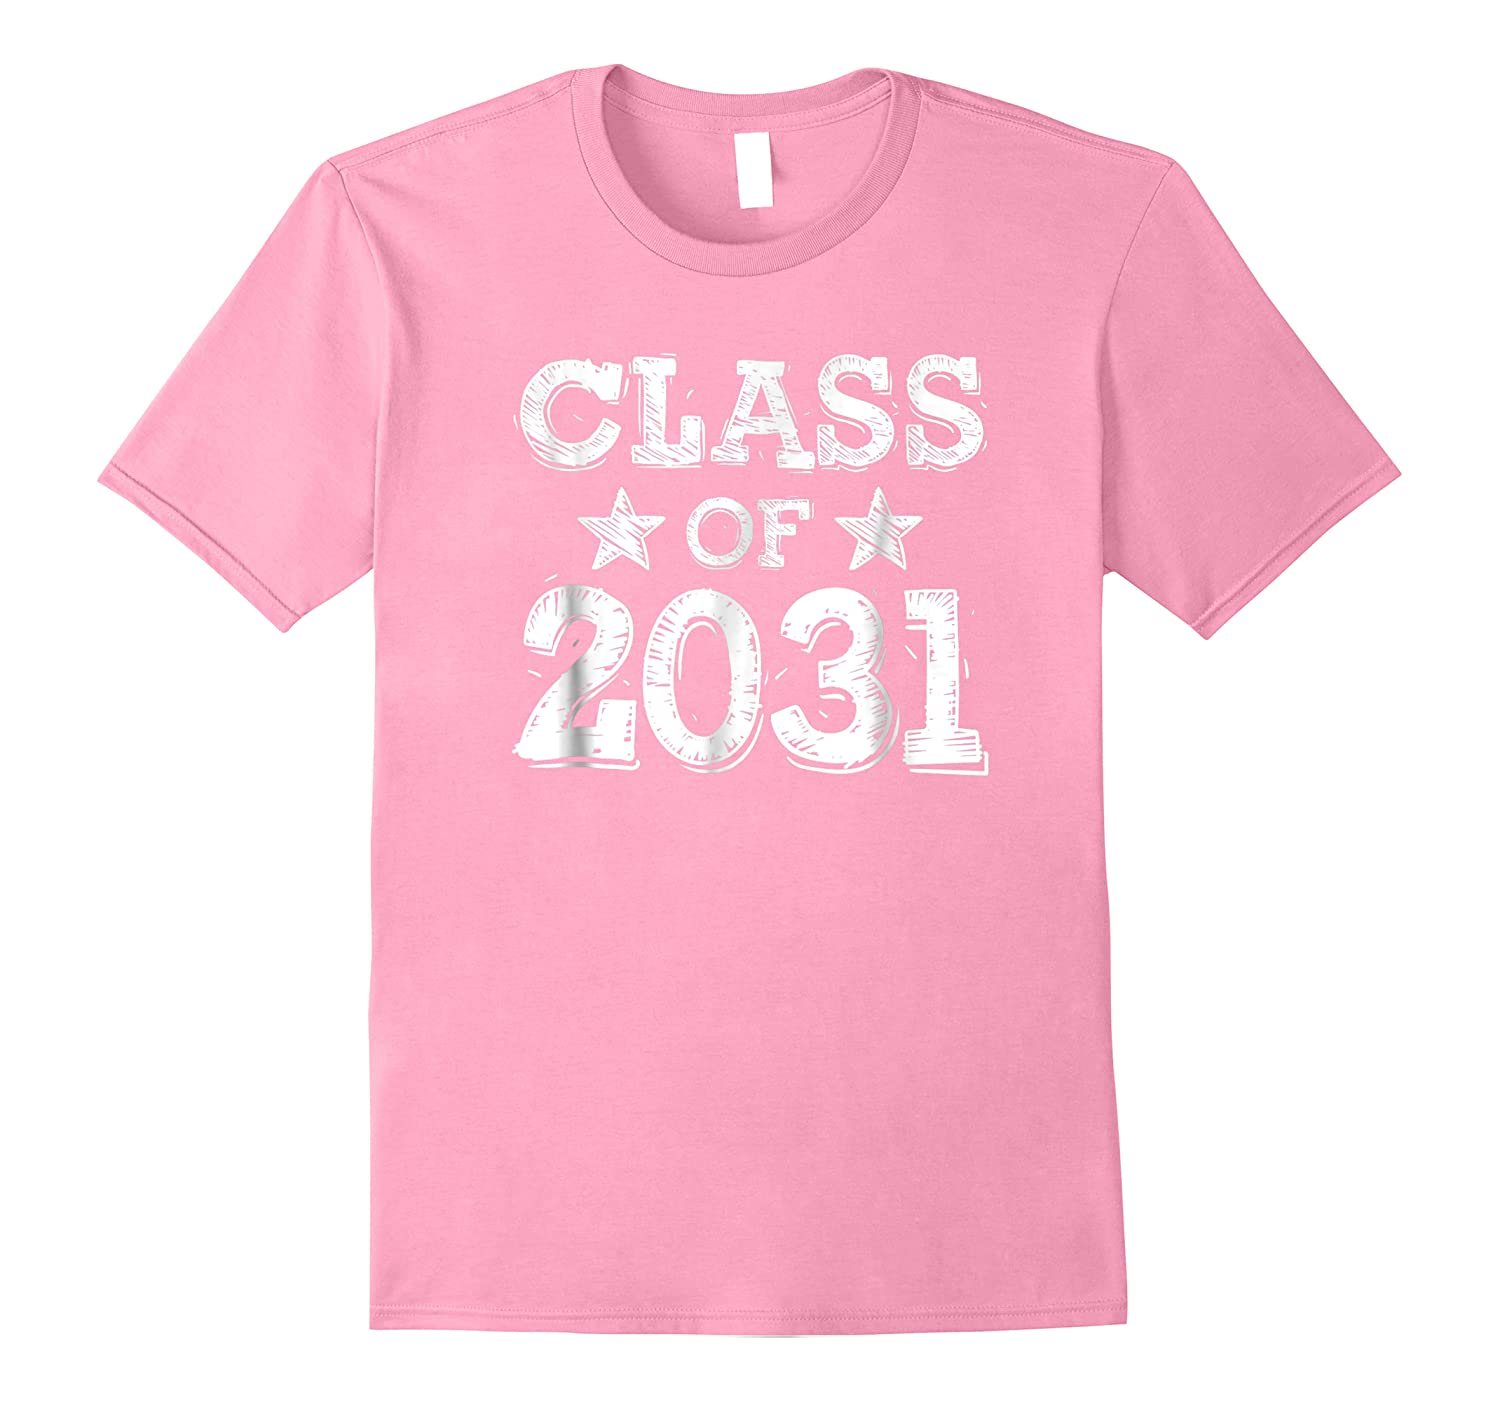 Class Of 2031 Grow With Me Pink Shirts